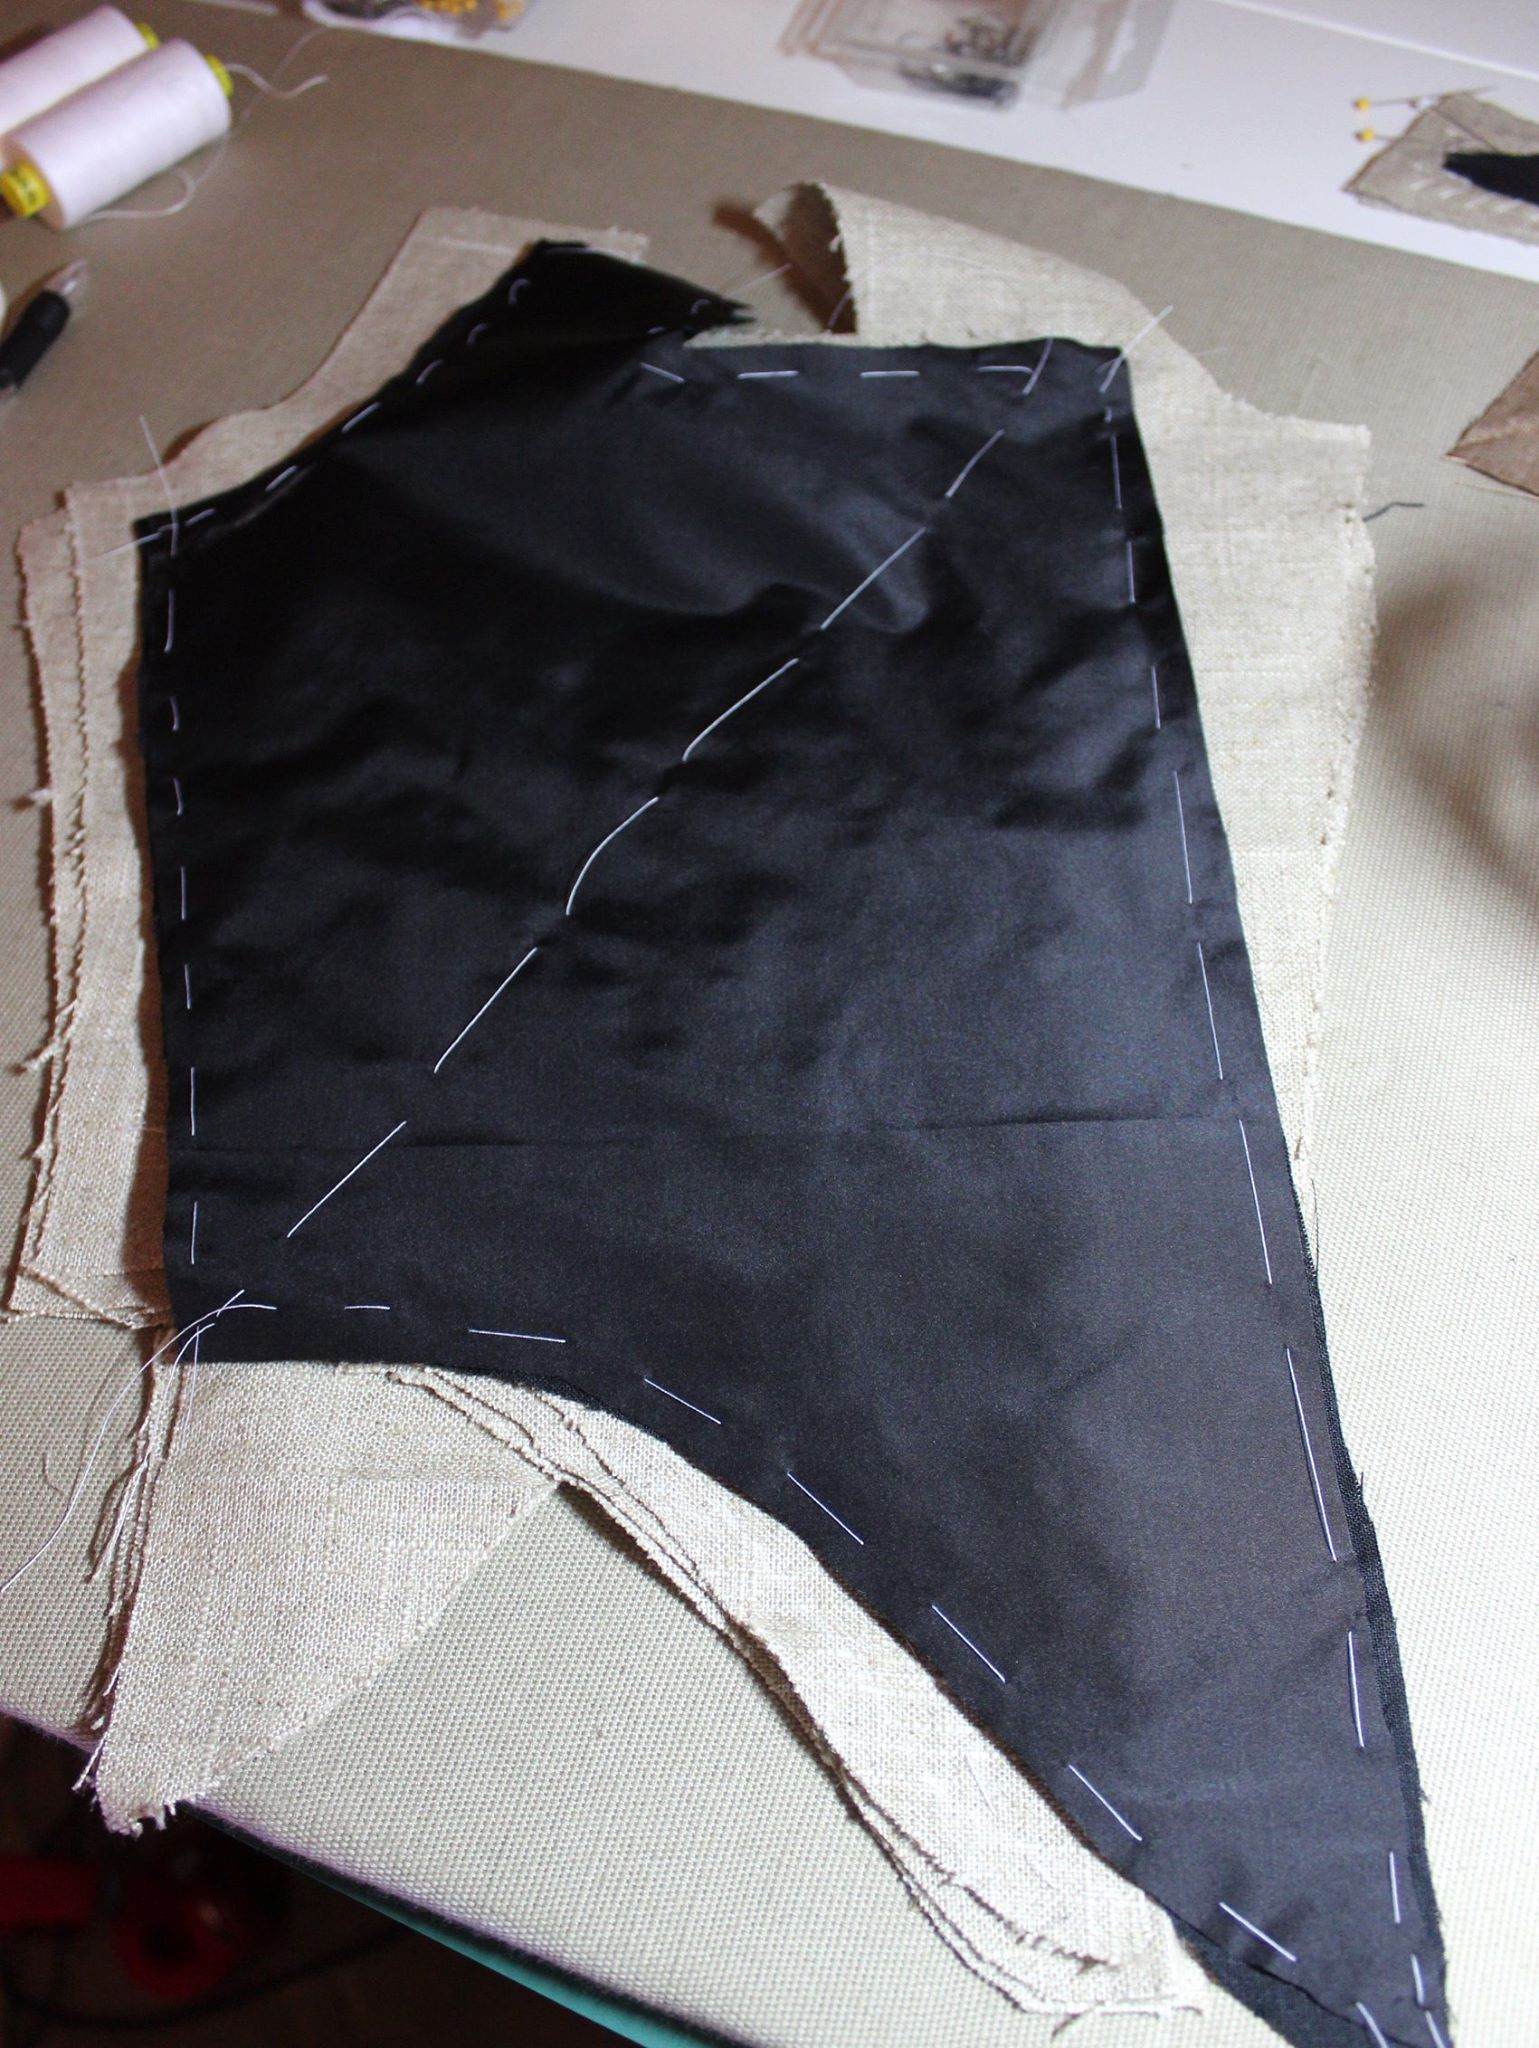 Black taffeta basted in place